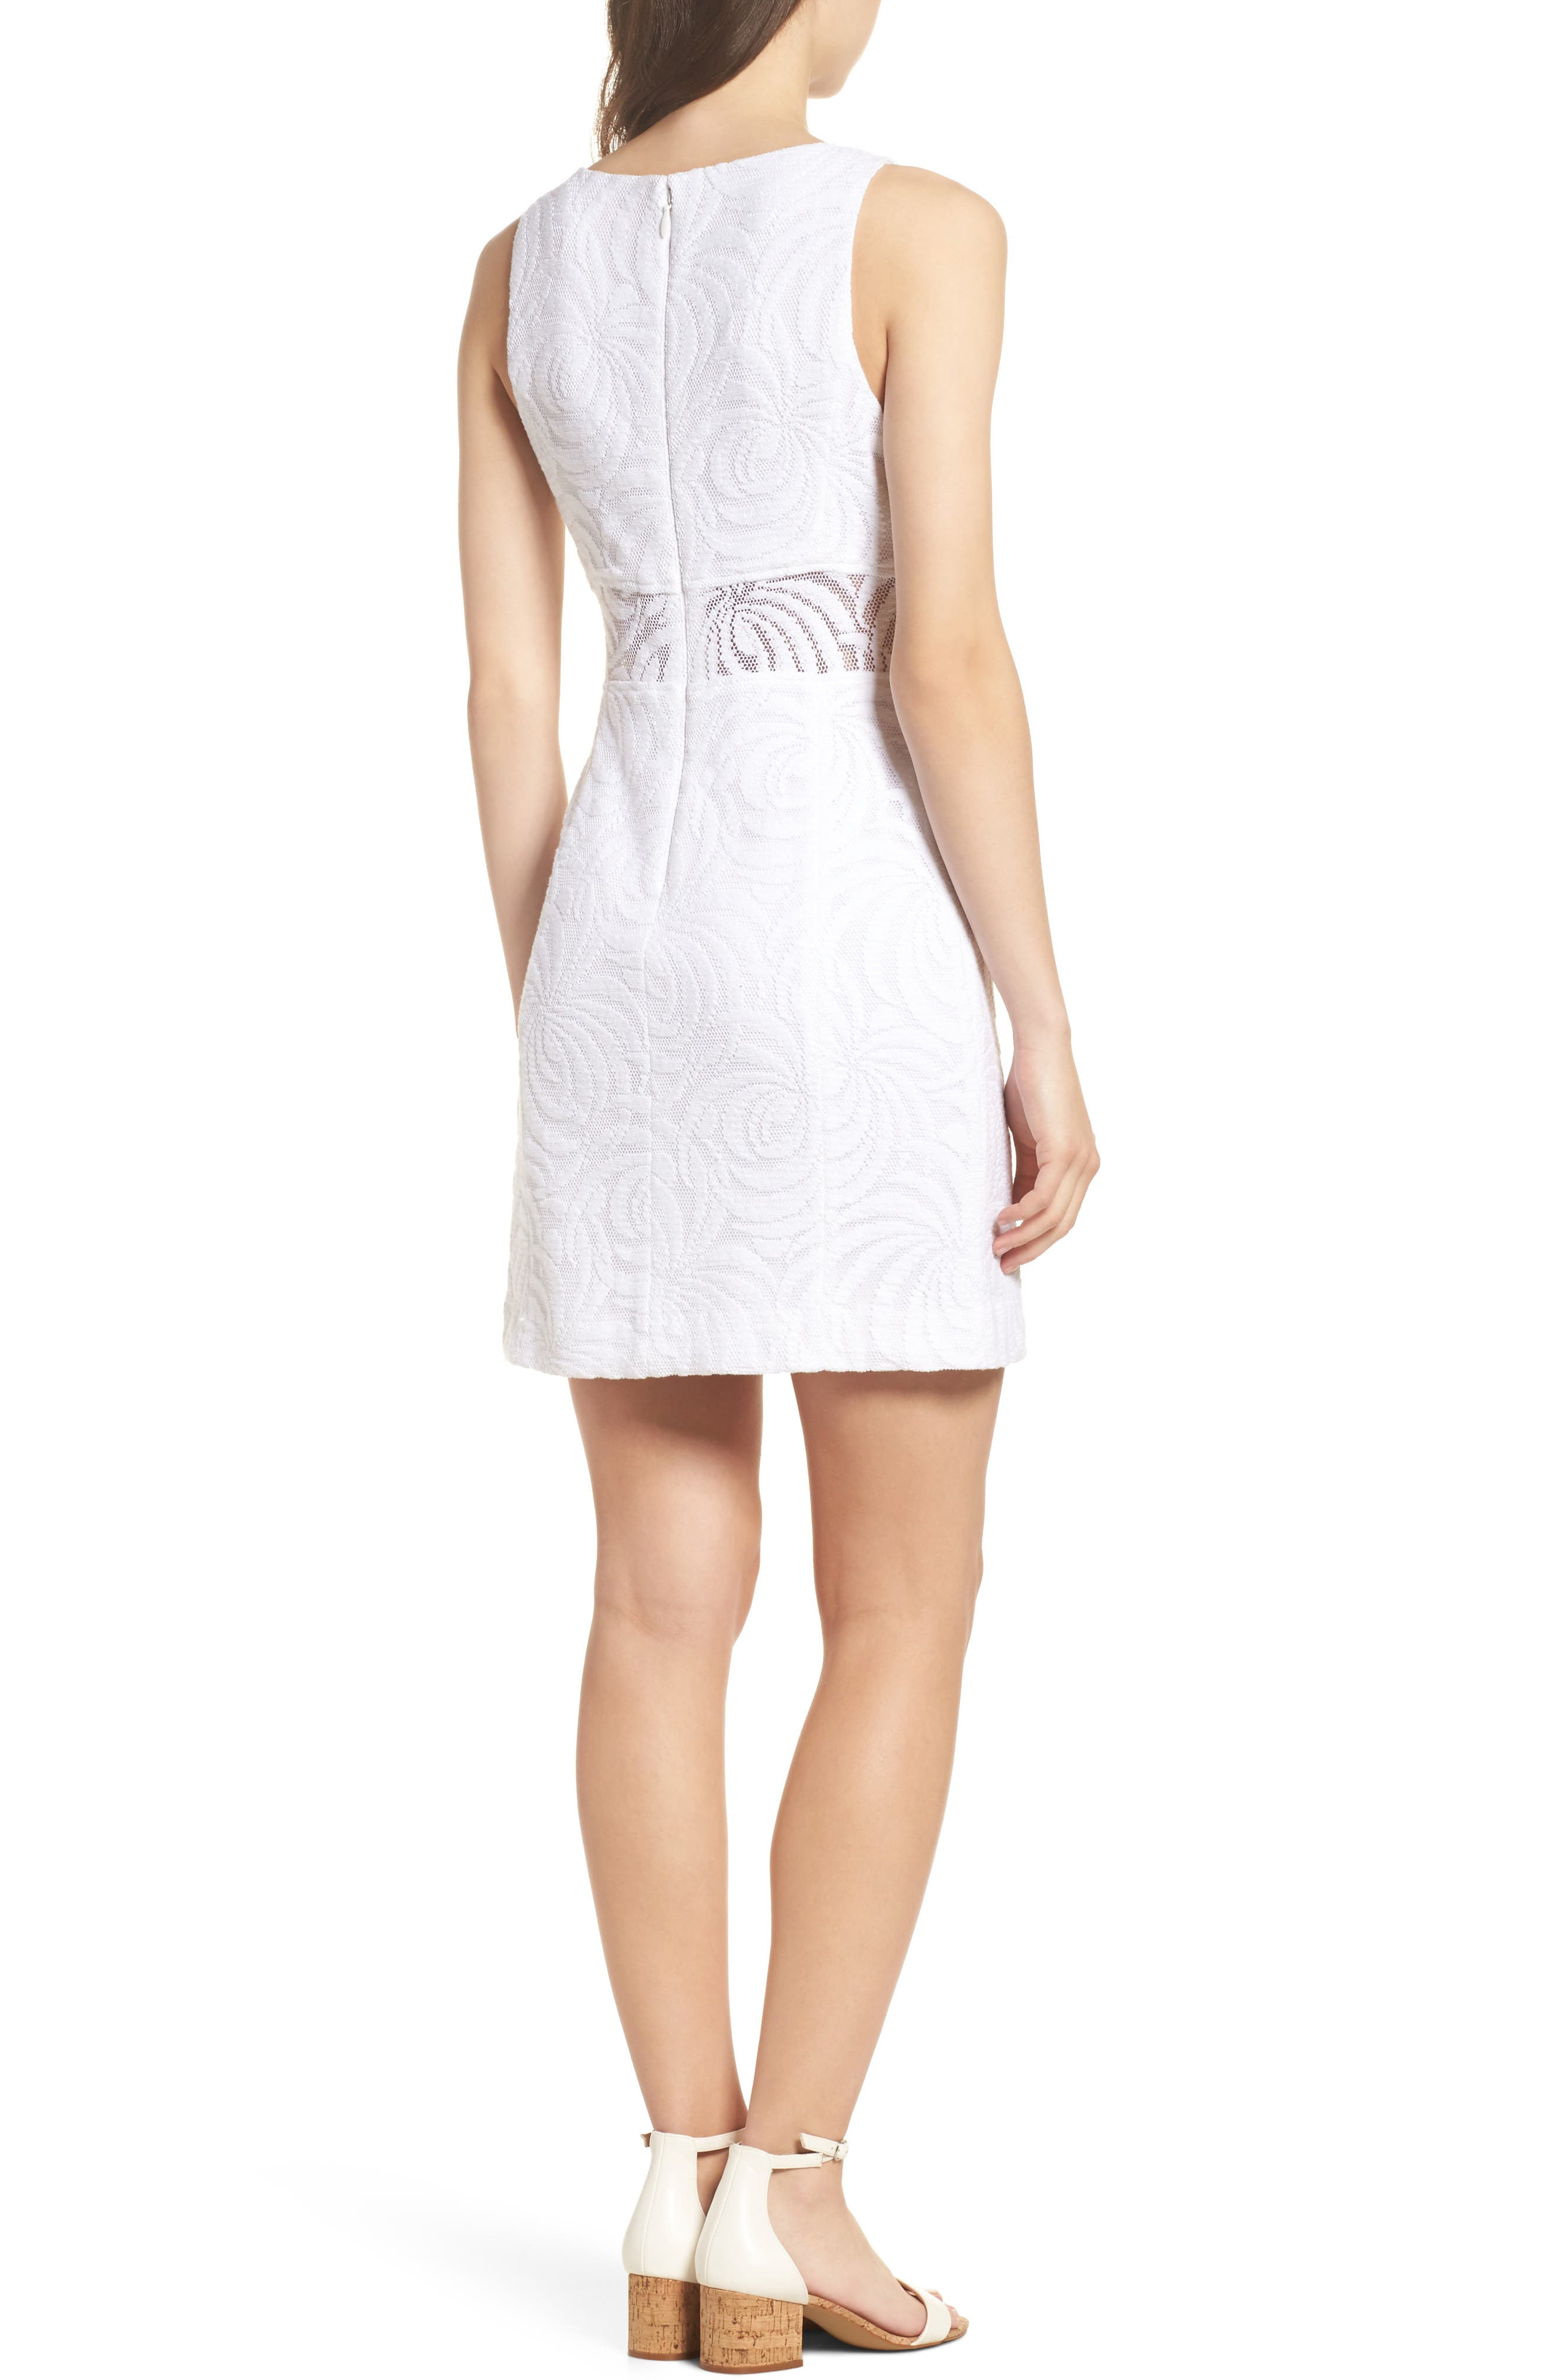 Blakely Lace Shift Dress,                             Alternate thumbnail 2, color,                             Resort White Sea Swirling Lace